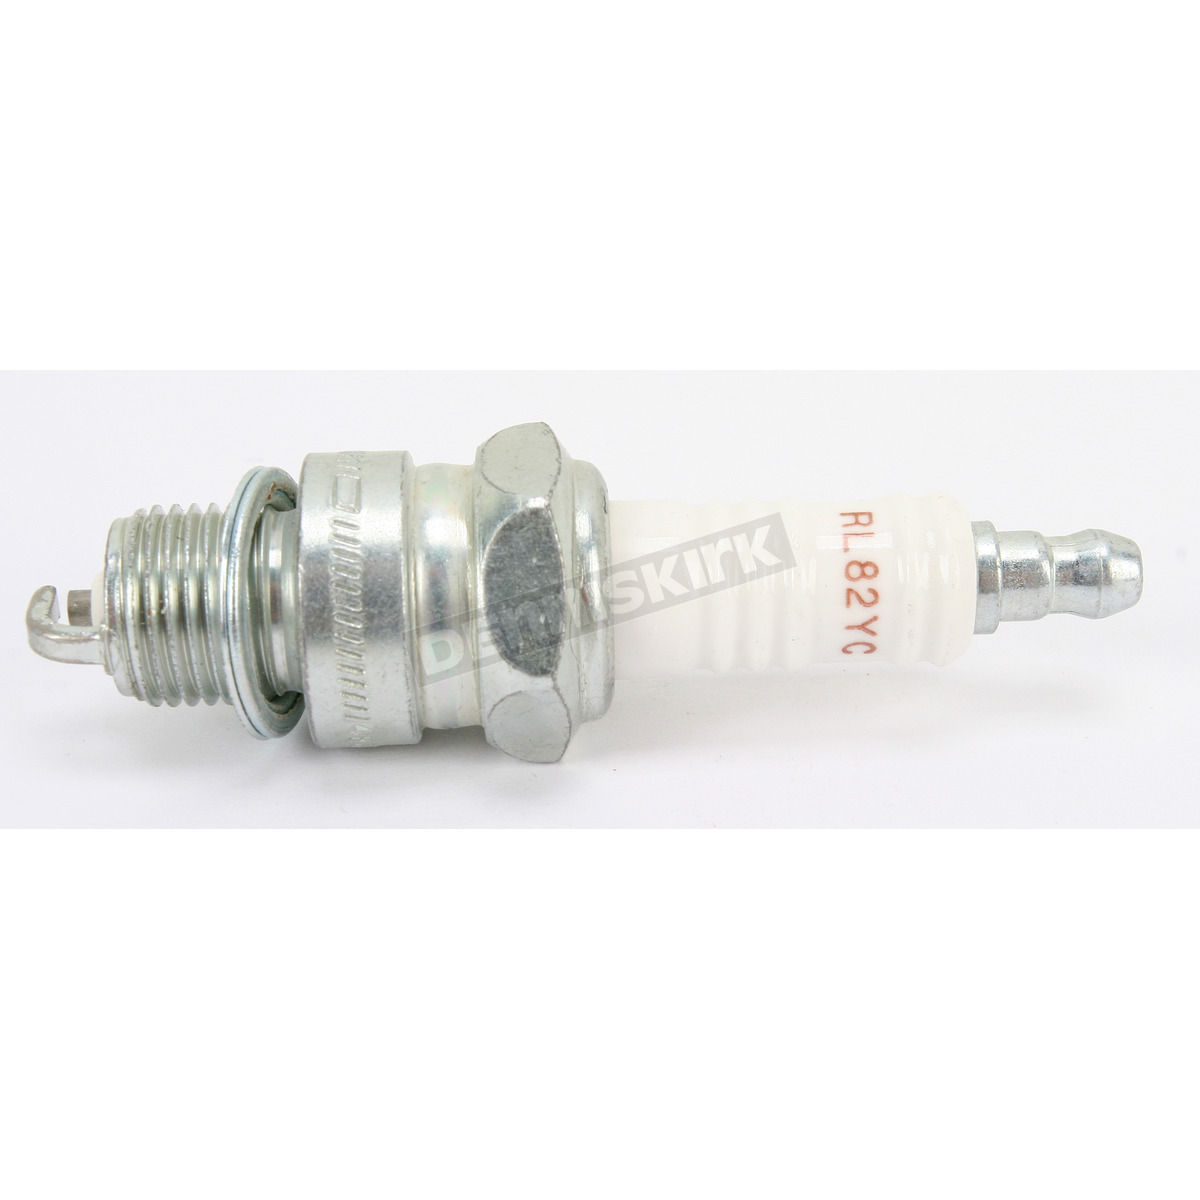 hight resolution of champion copper plus spark plug rl82yc